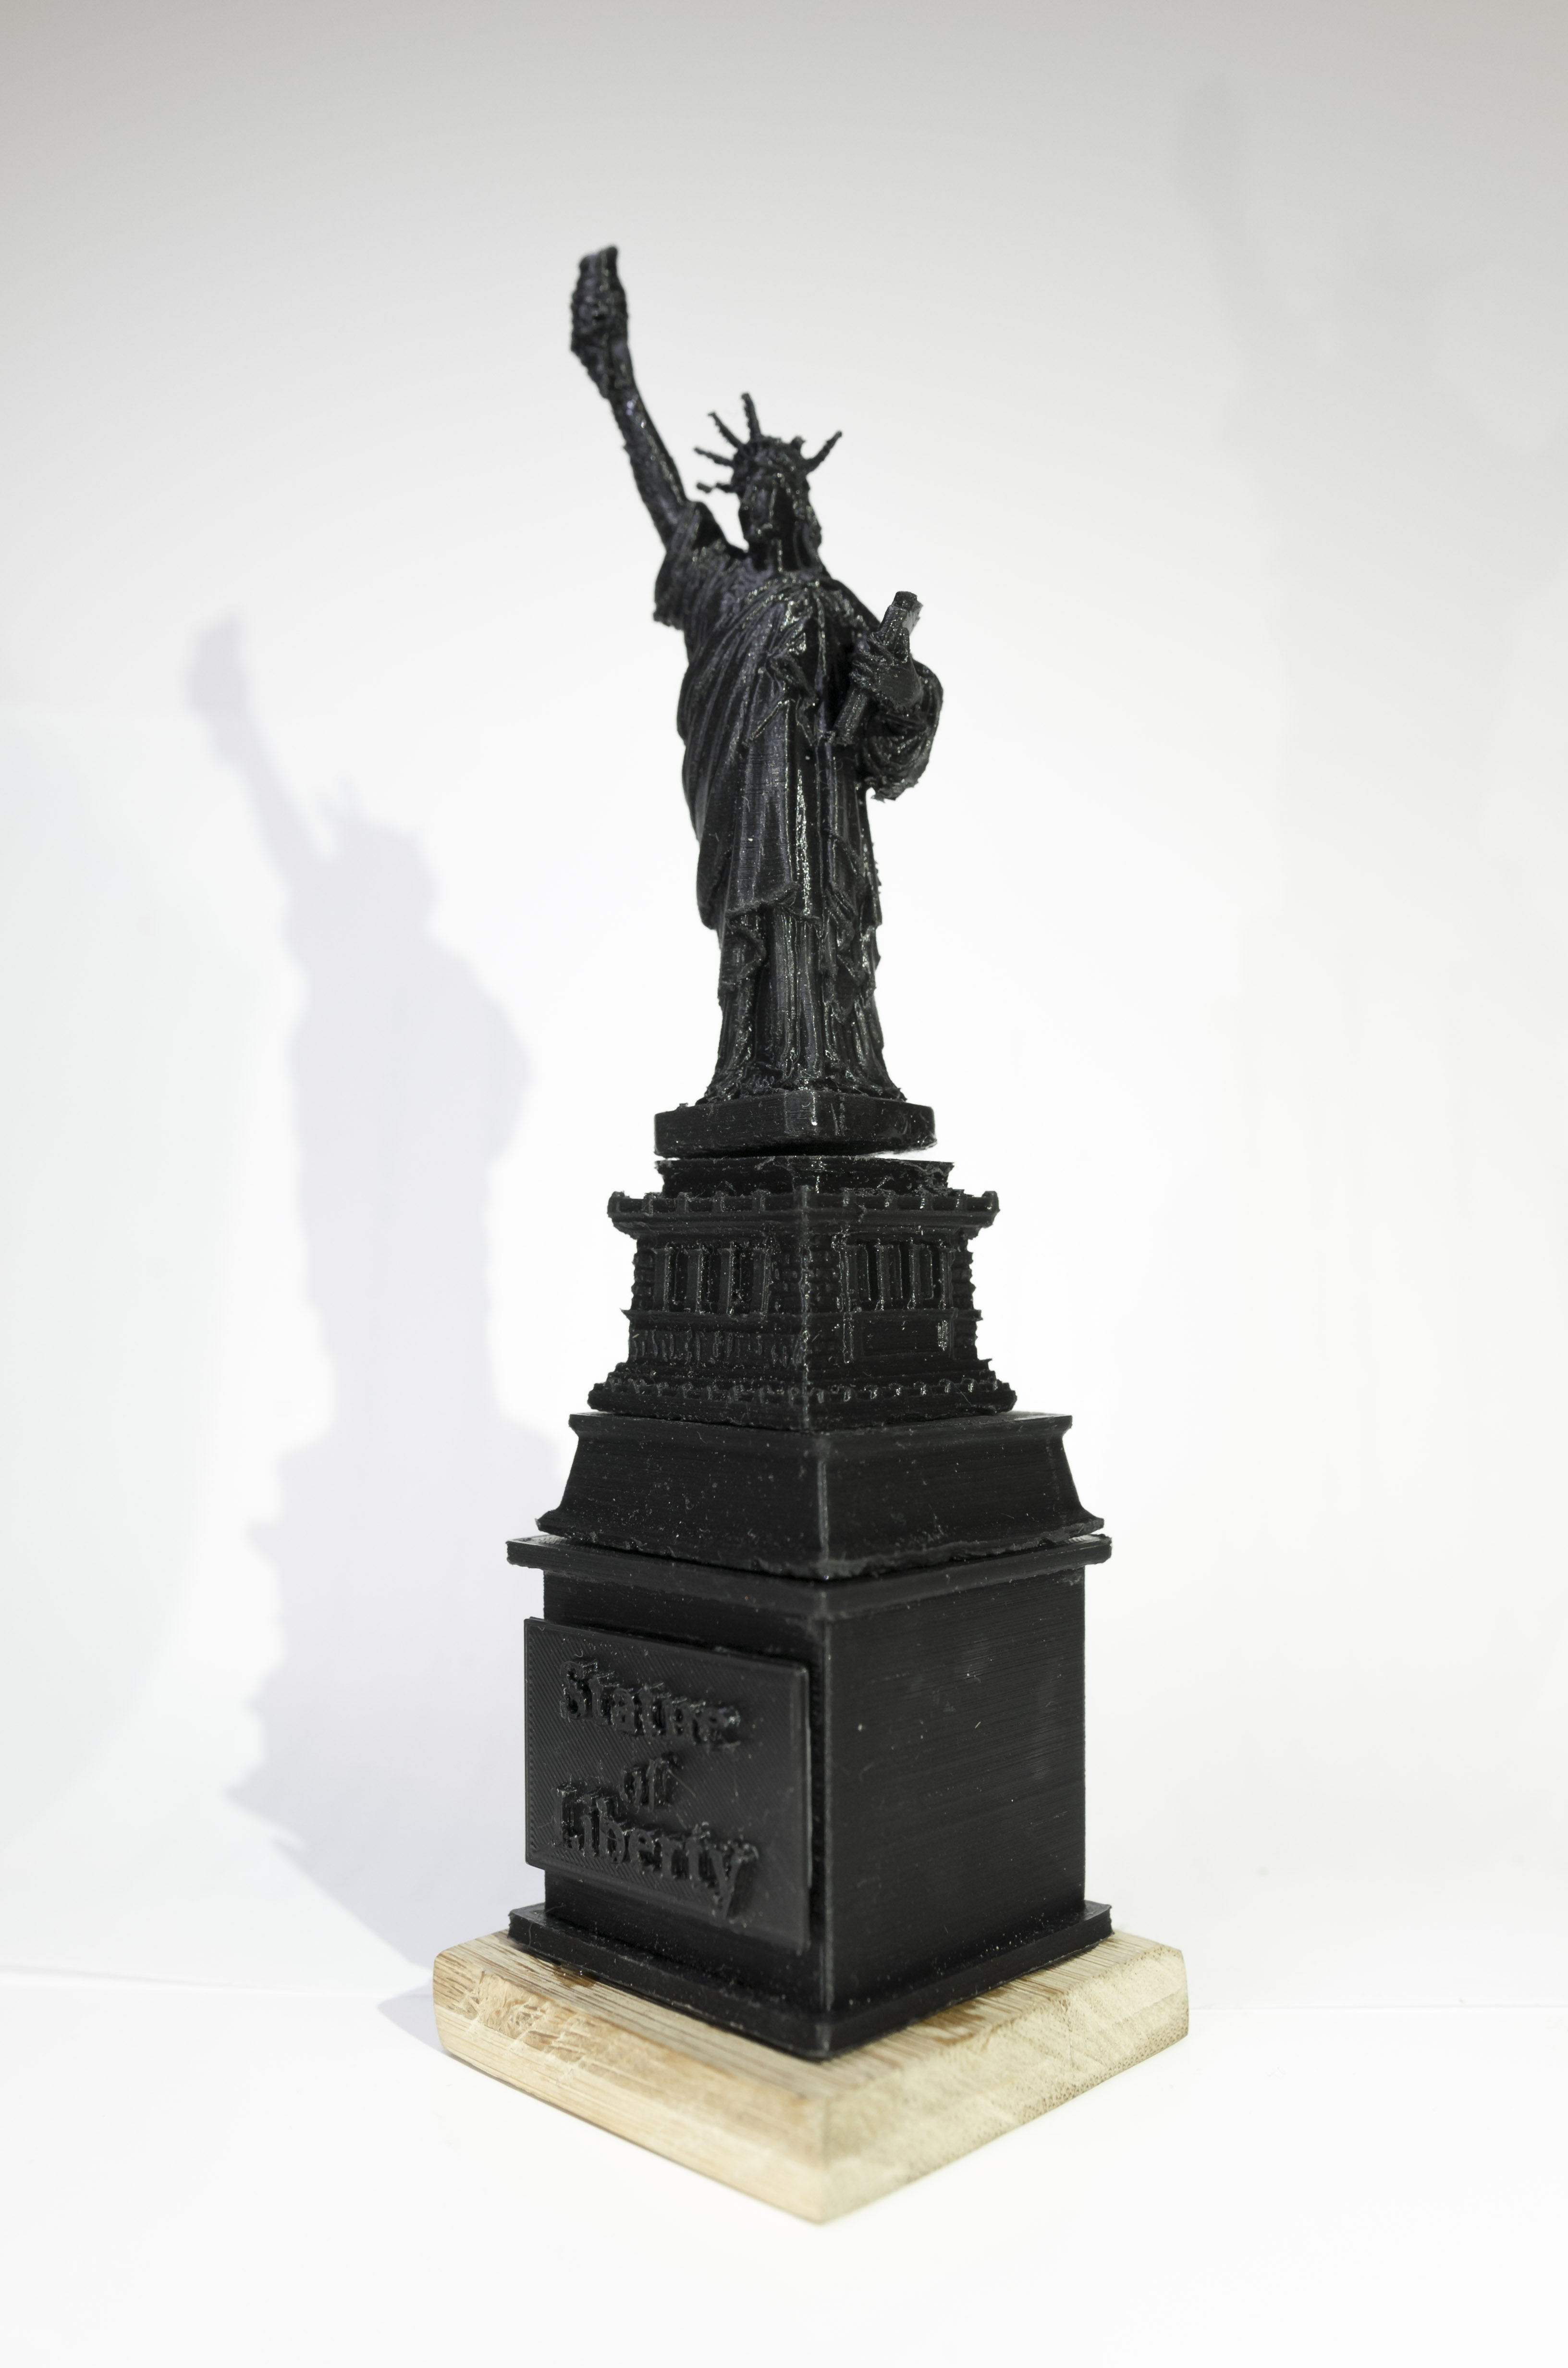 deface-a-statue: Statue of Liberty